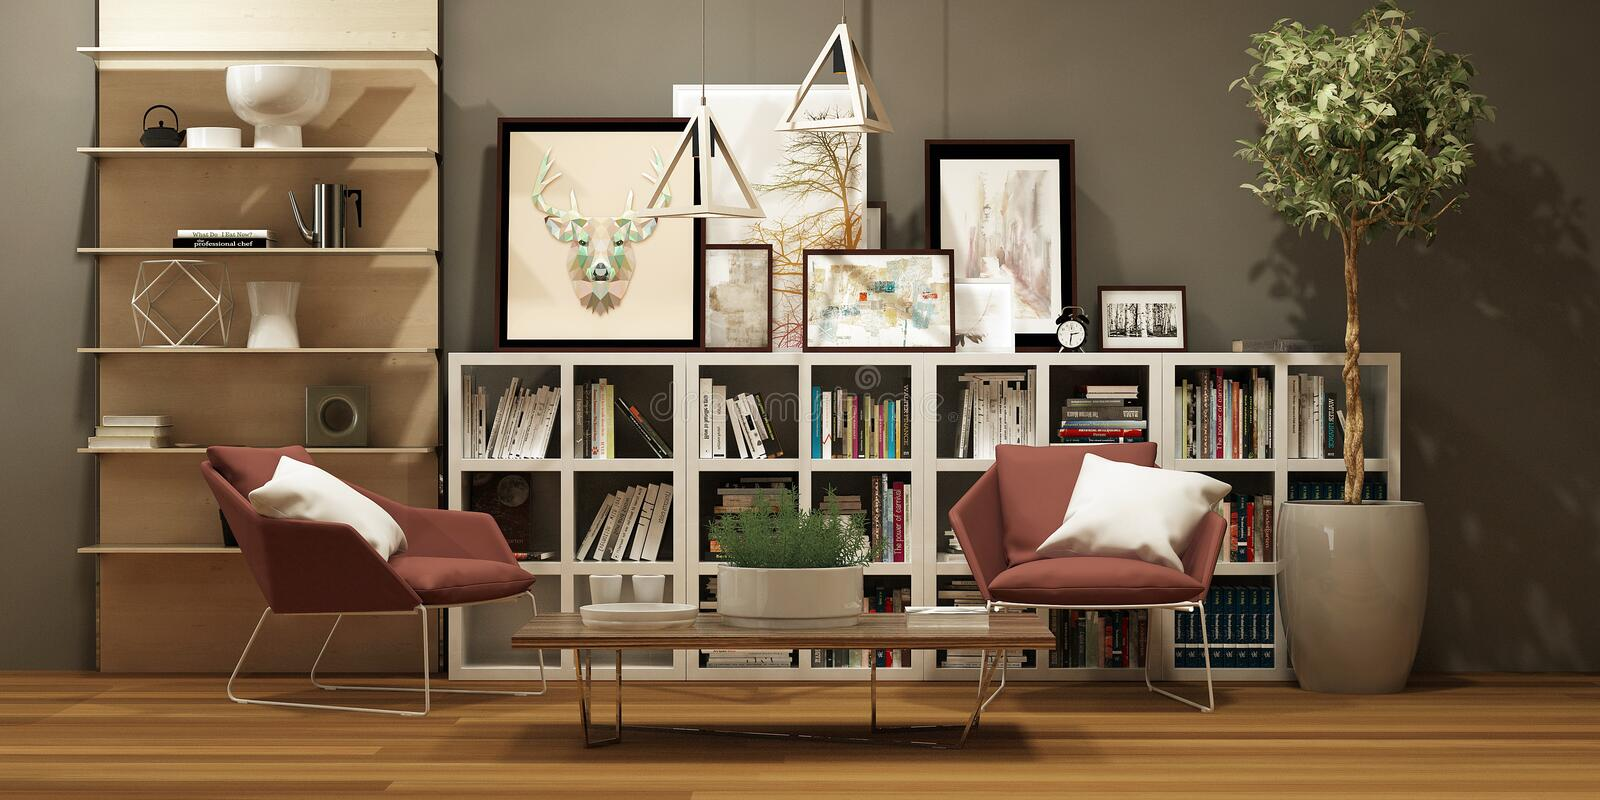 Modern house interior with library, pictures and a pair of red armchairs in scandinavian style stock photo